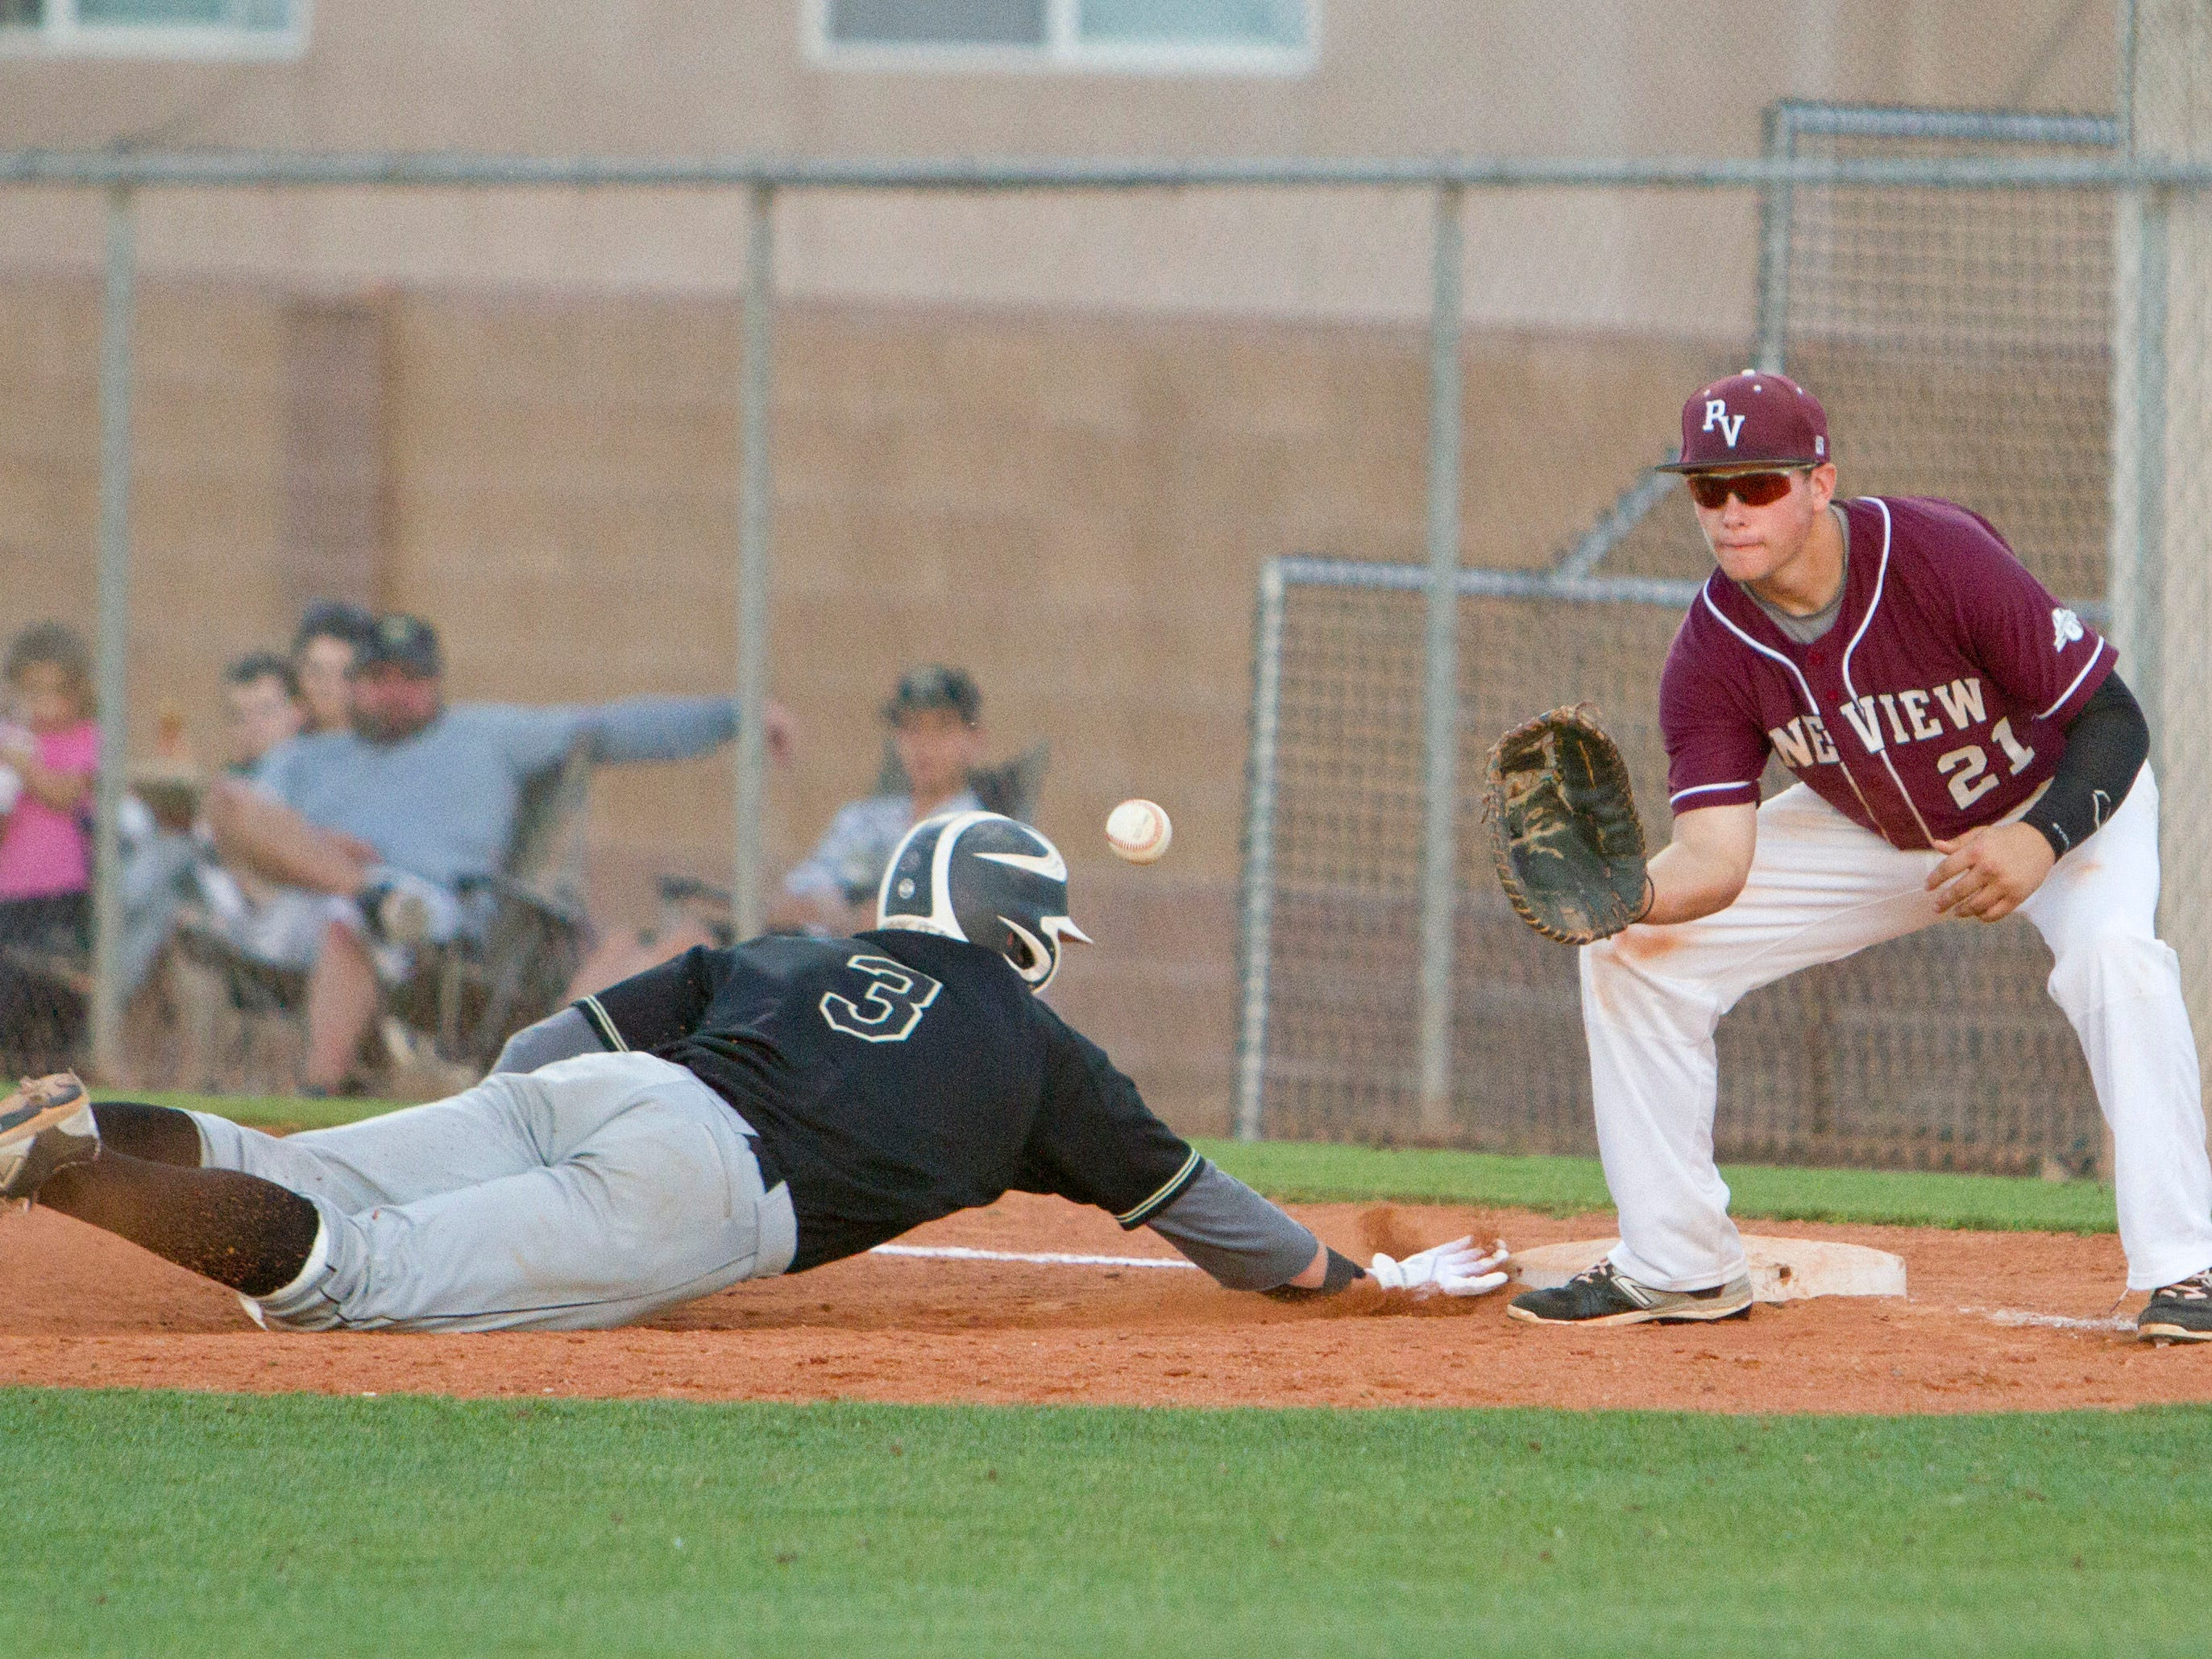 Pine View first baseman Brooks Barney attempts to pick off a Desert Hills runner at first base Tuesday in St. George.